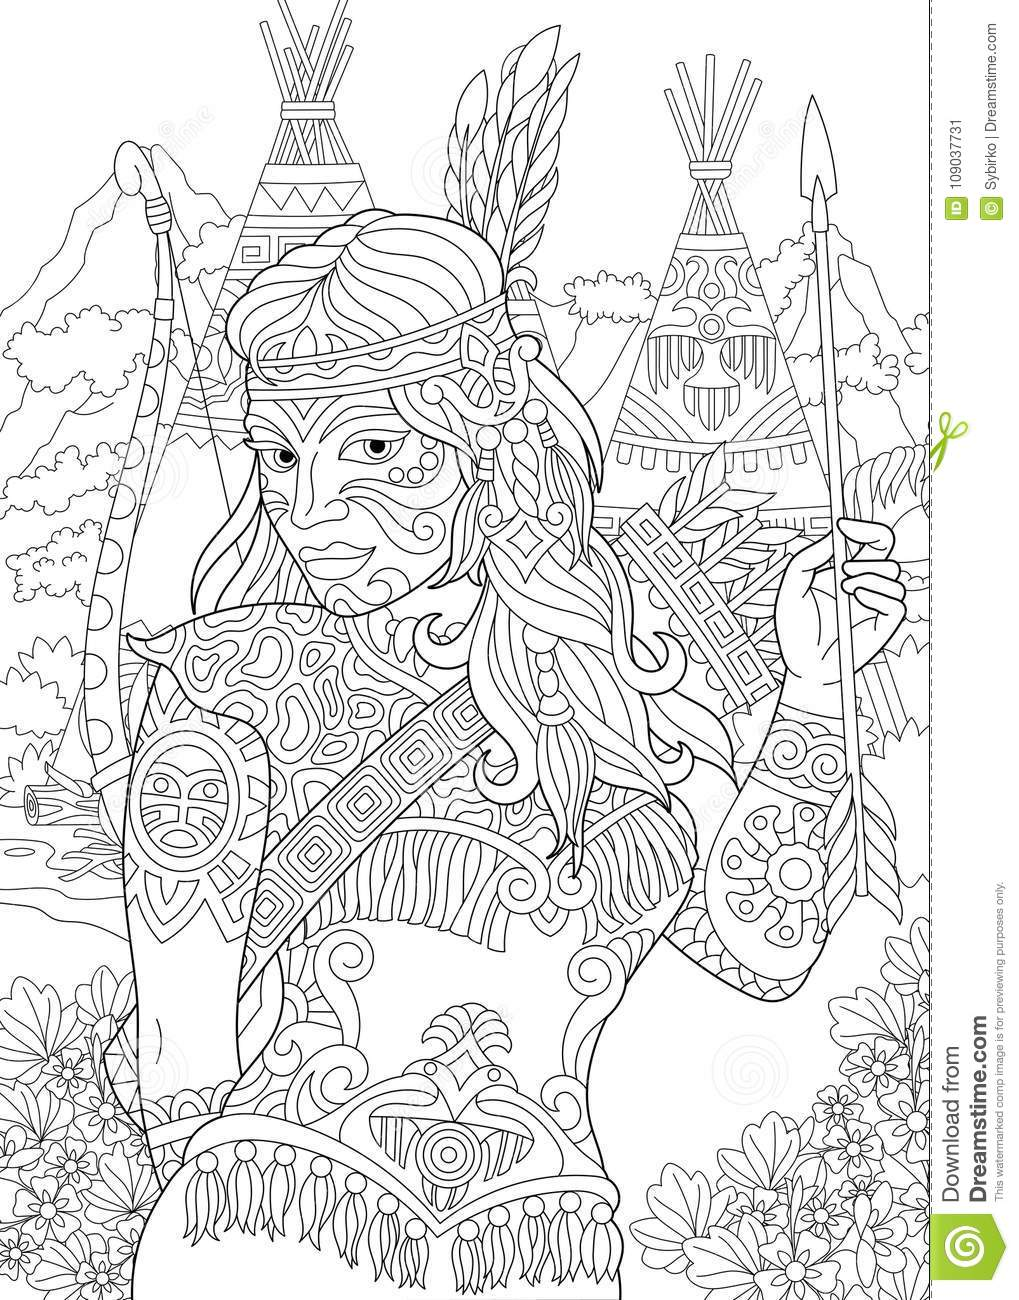 Femme Indienne Indigène De Zentangle Illustration De Vecteur